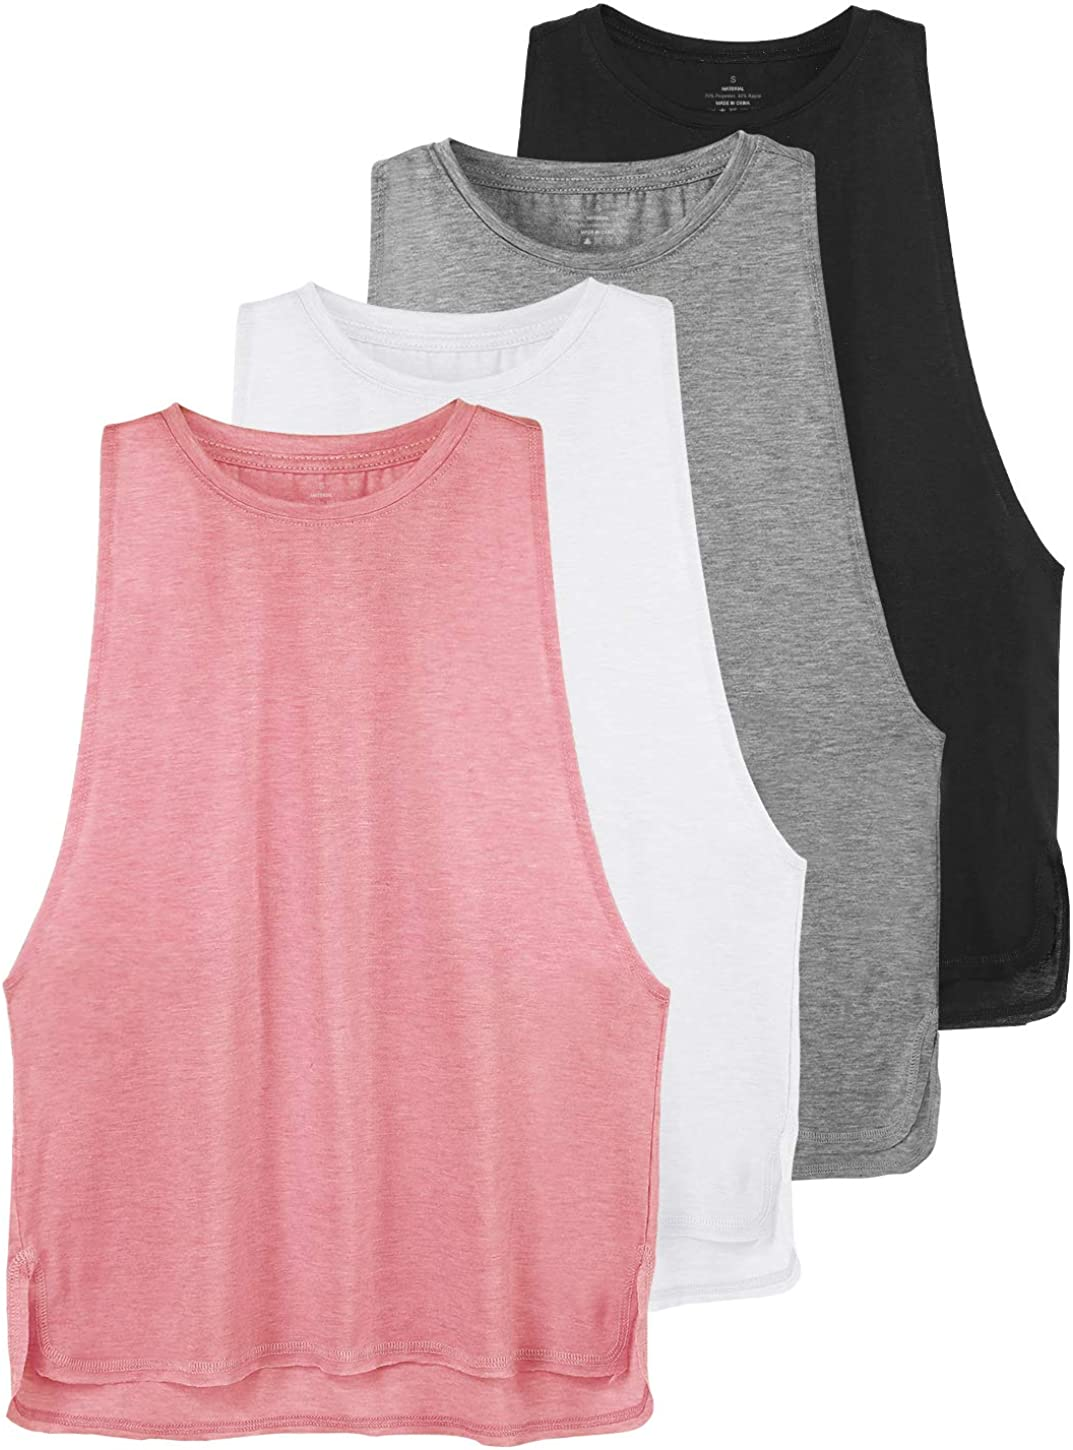 Cosy Pyro Sale price Workout Tank Tops Tanks Portland Mall Running for Women Lightweight